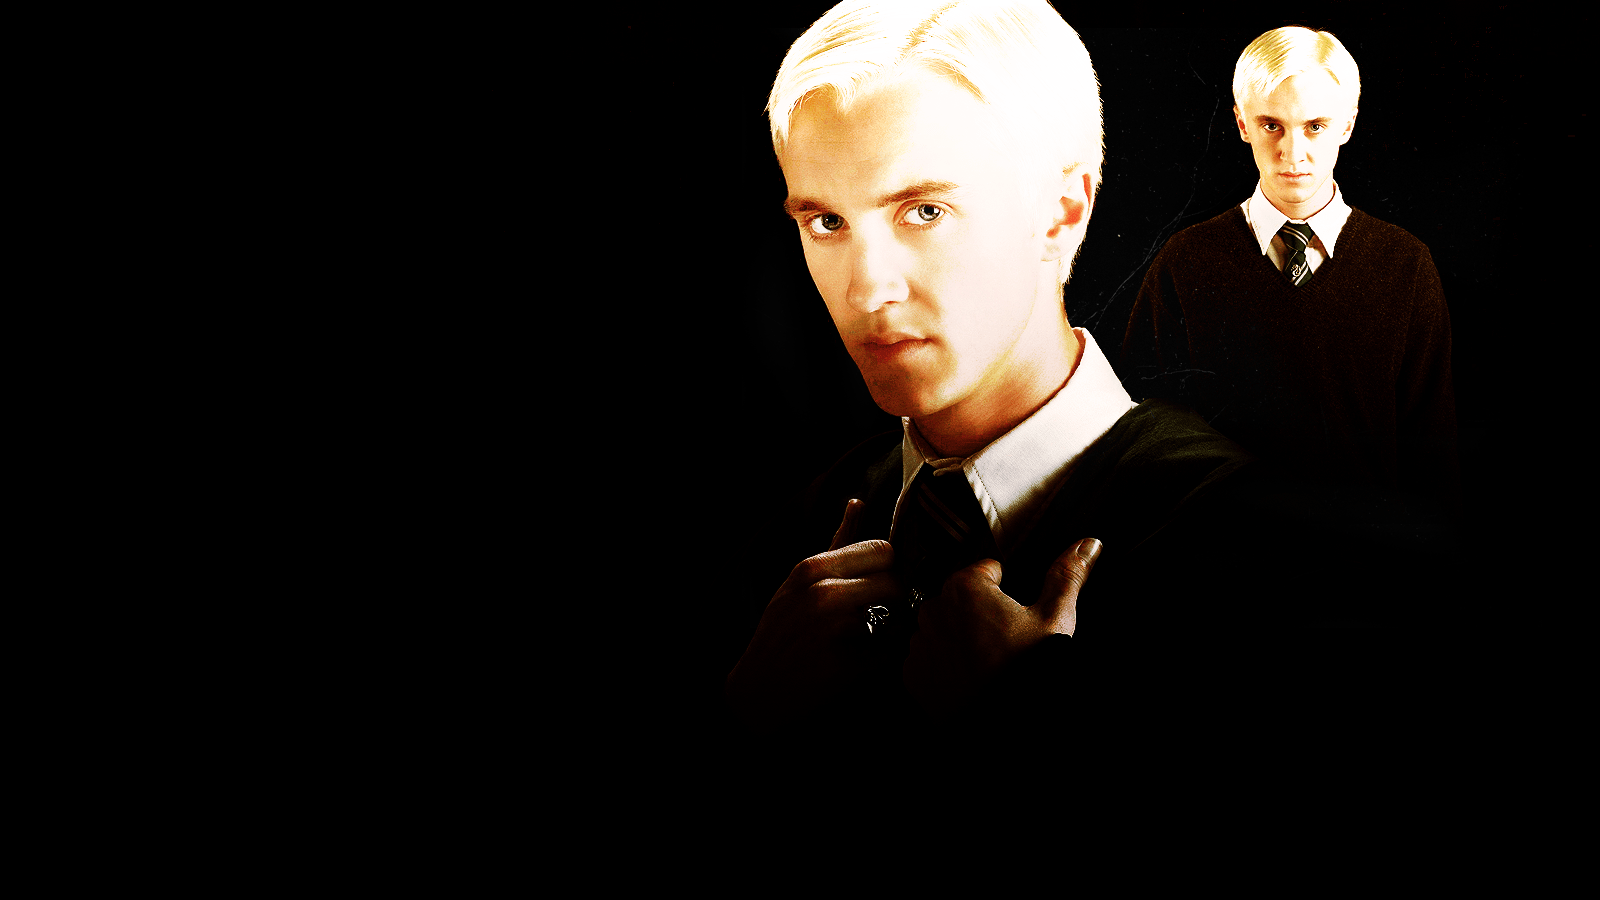 Draco Malfoy Wallpapers 2 by TheMagicWillNeverEnd